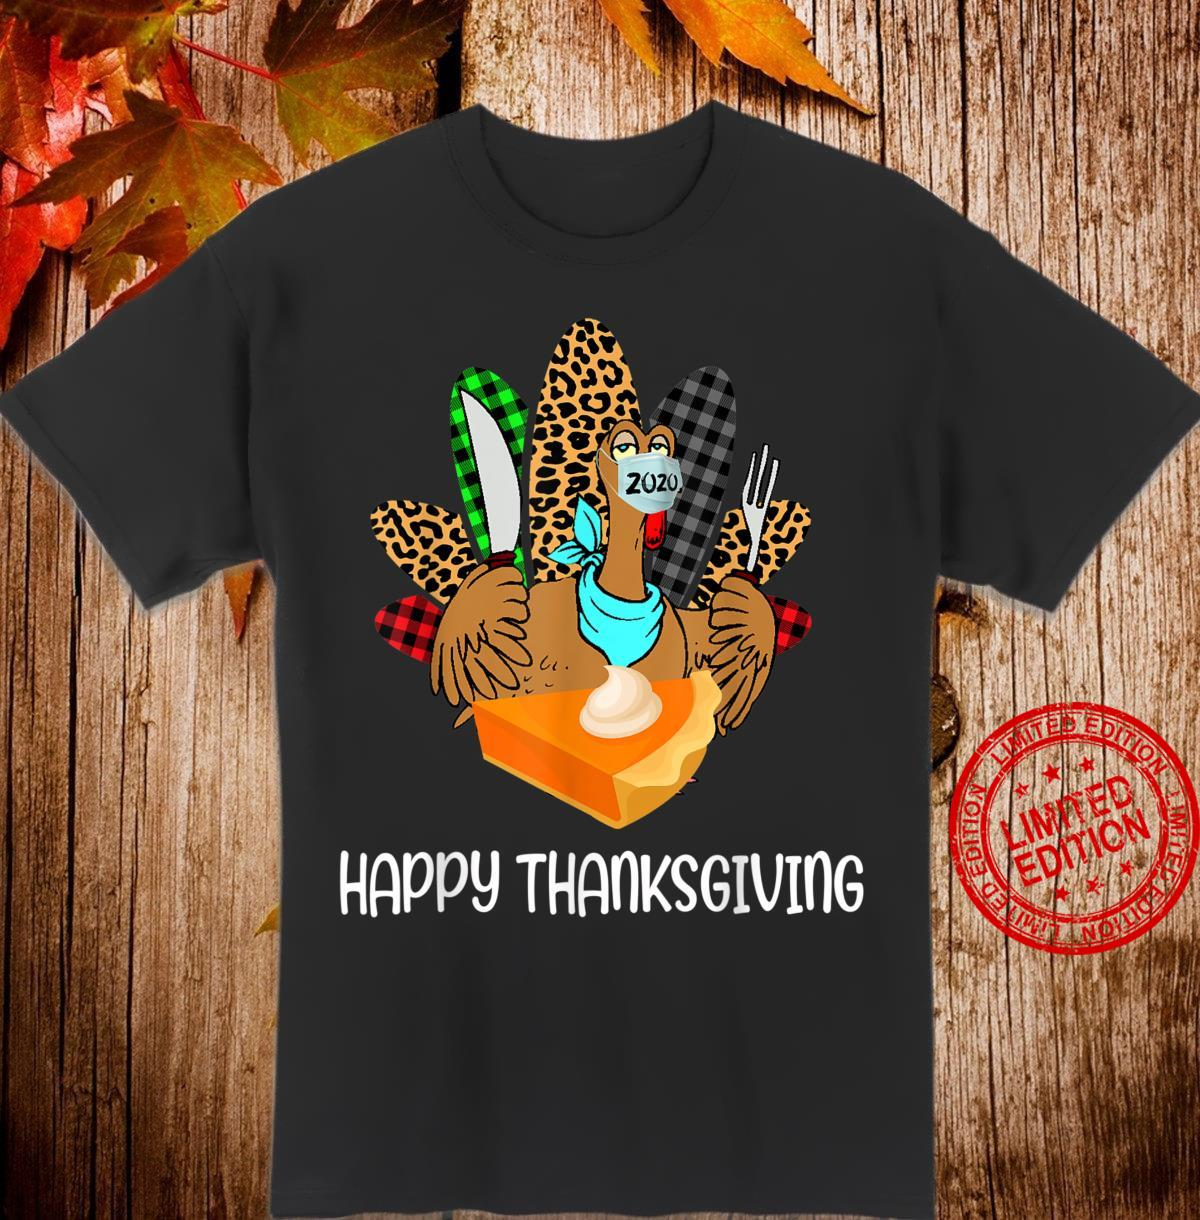 Happy Thanksgiving Leopard Plaid Turkey Shirt